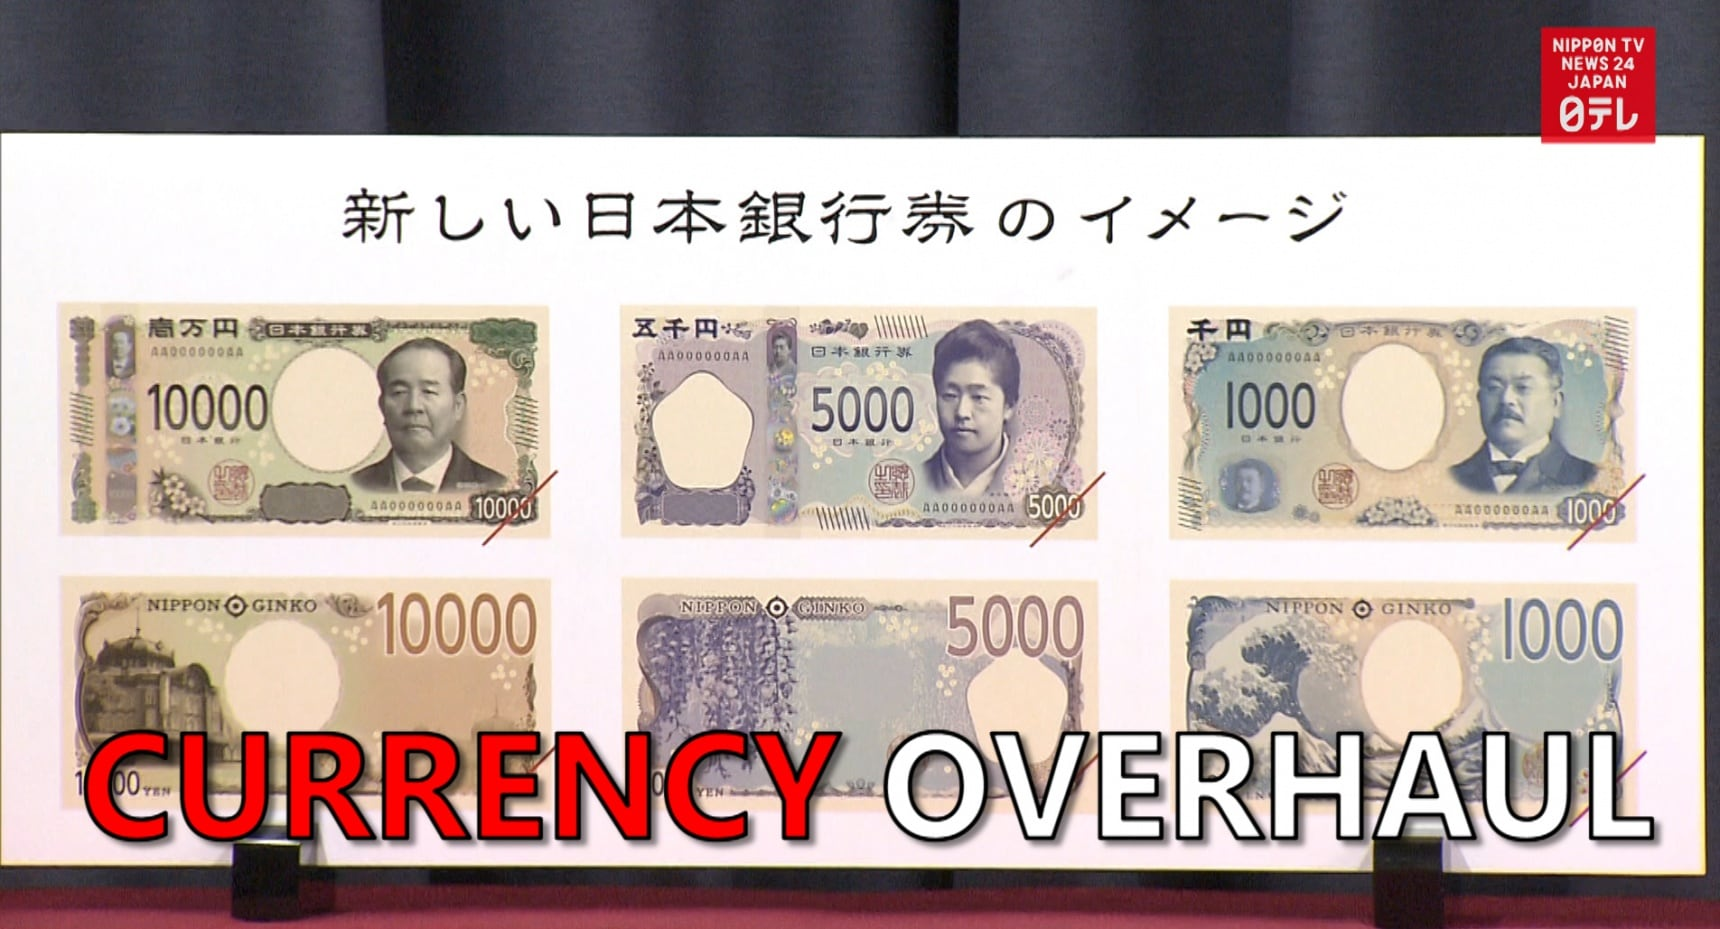 A Look Behind the Yen Makeover